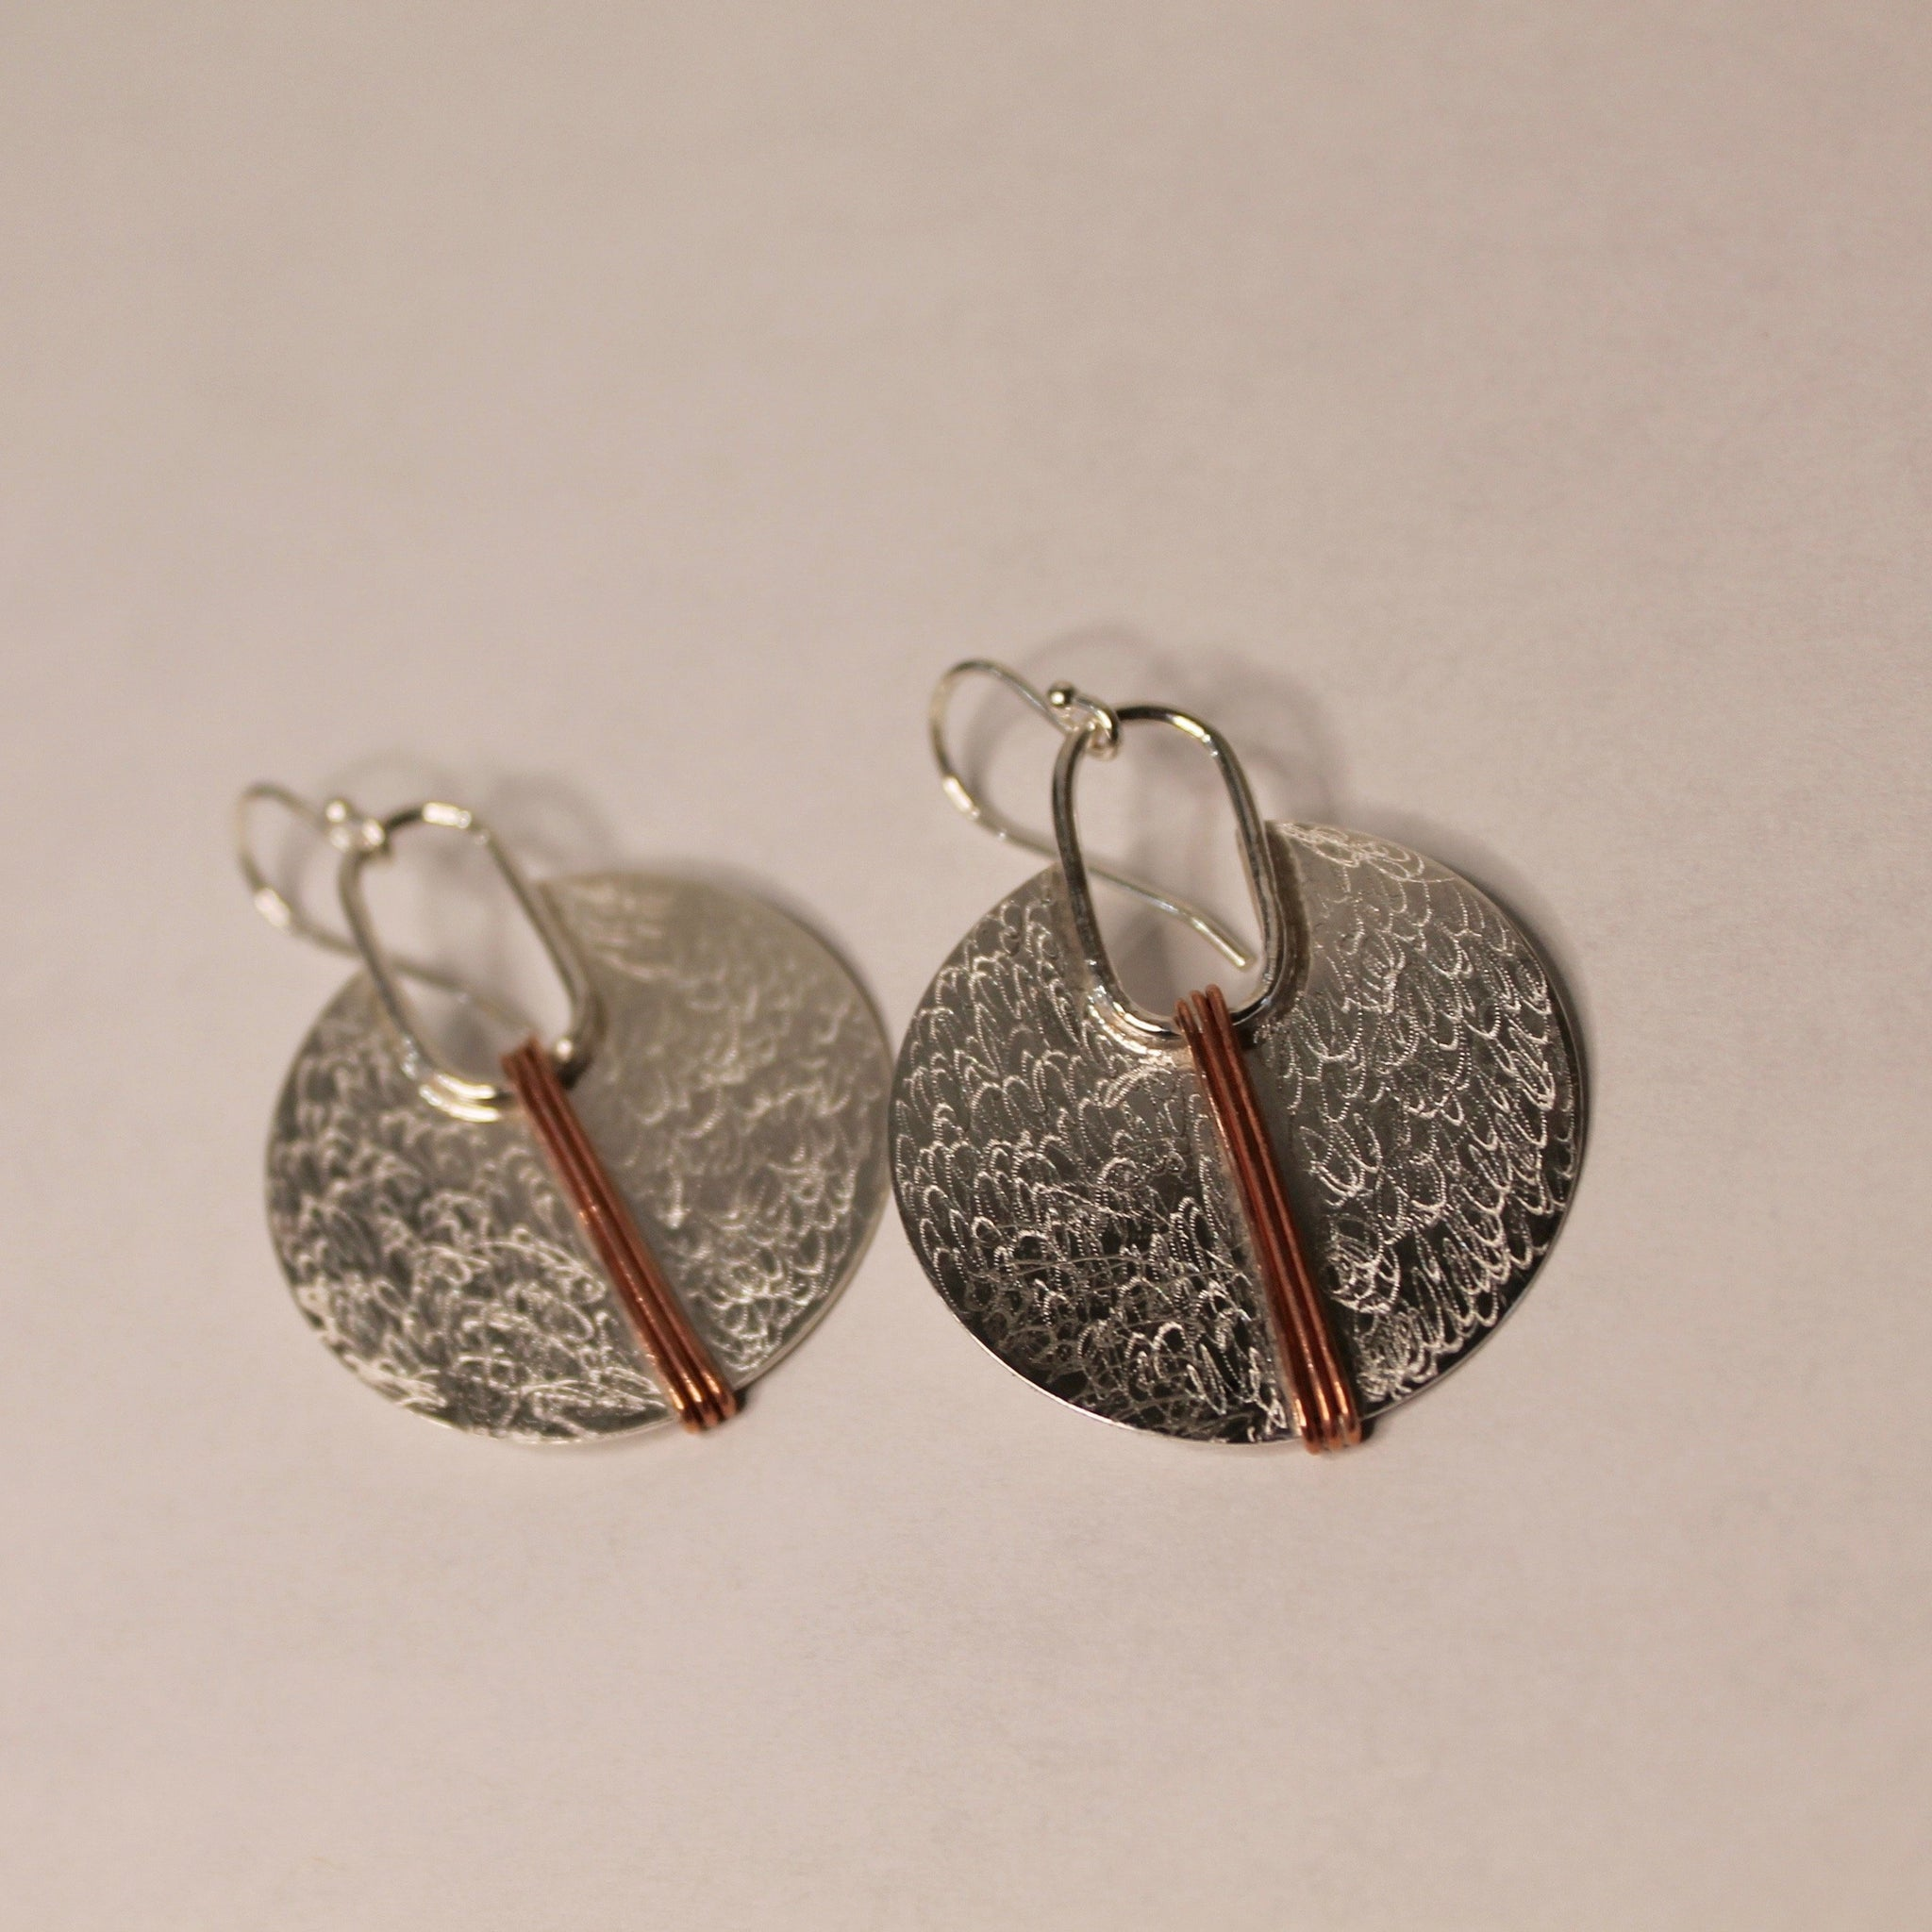 silver circle with copper lines earrings on white background